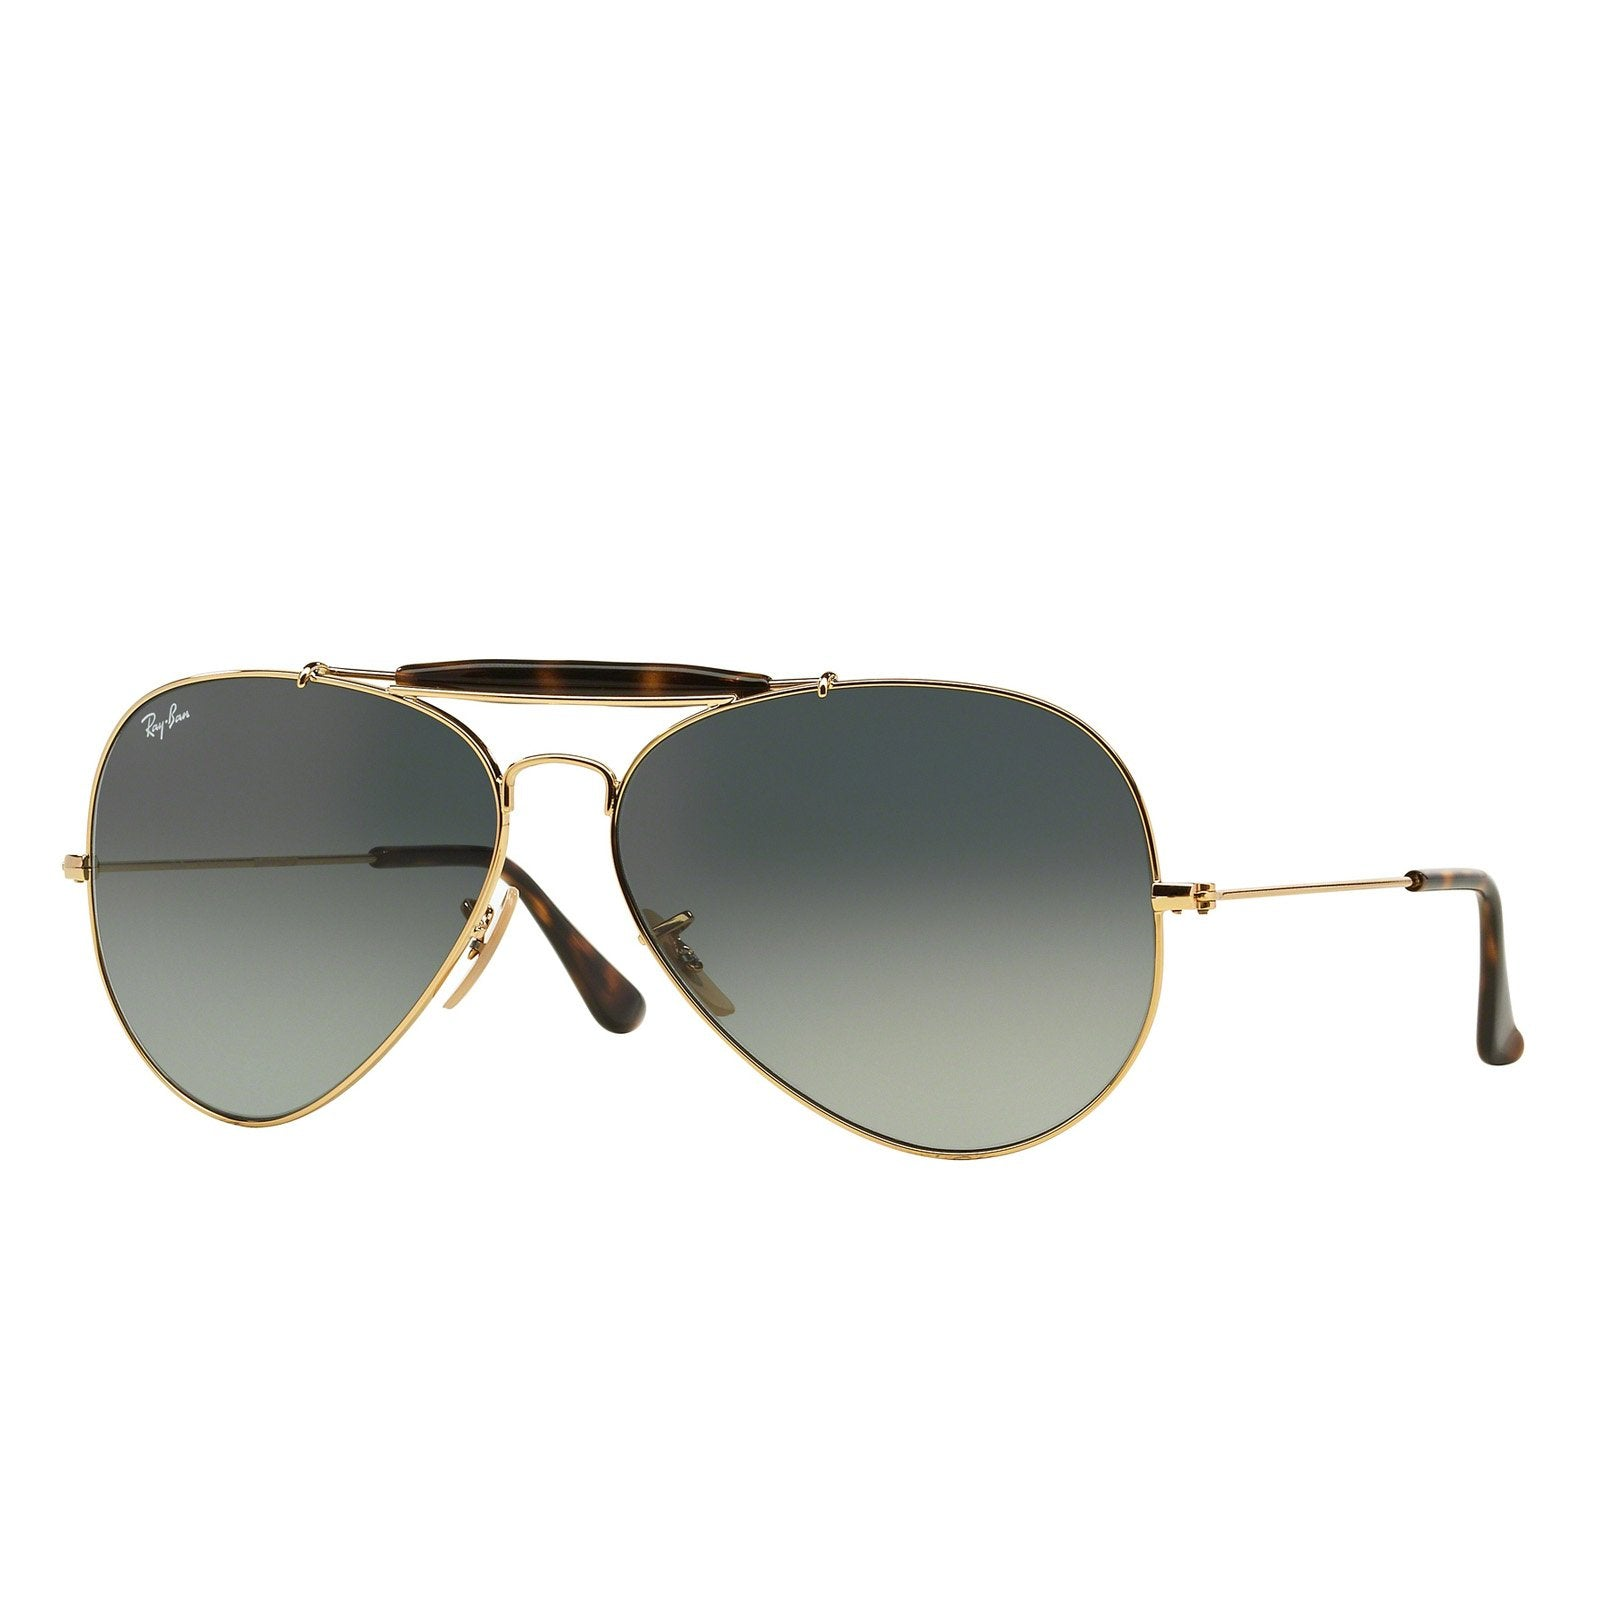 Ray-Ban RB3029 181/71 Sunglasses